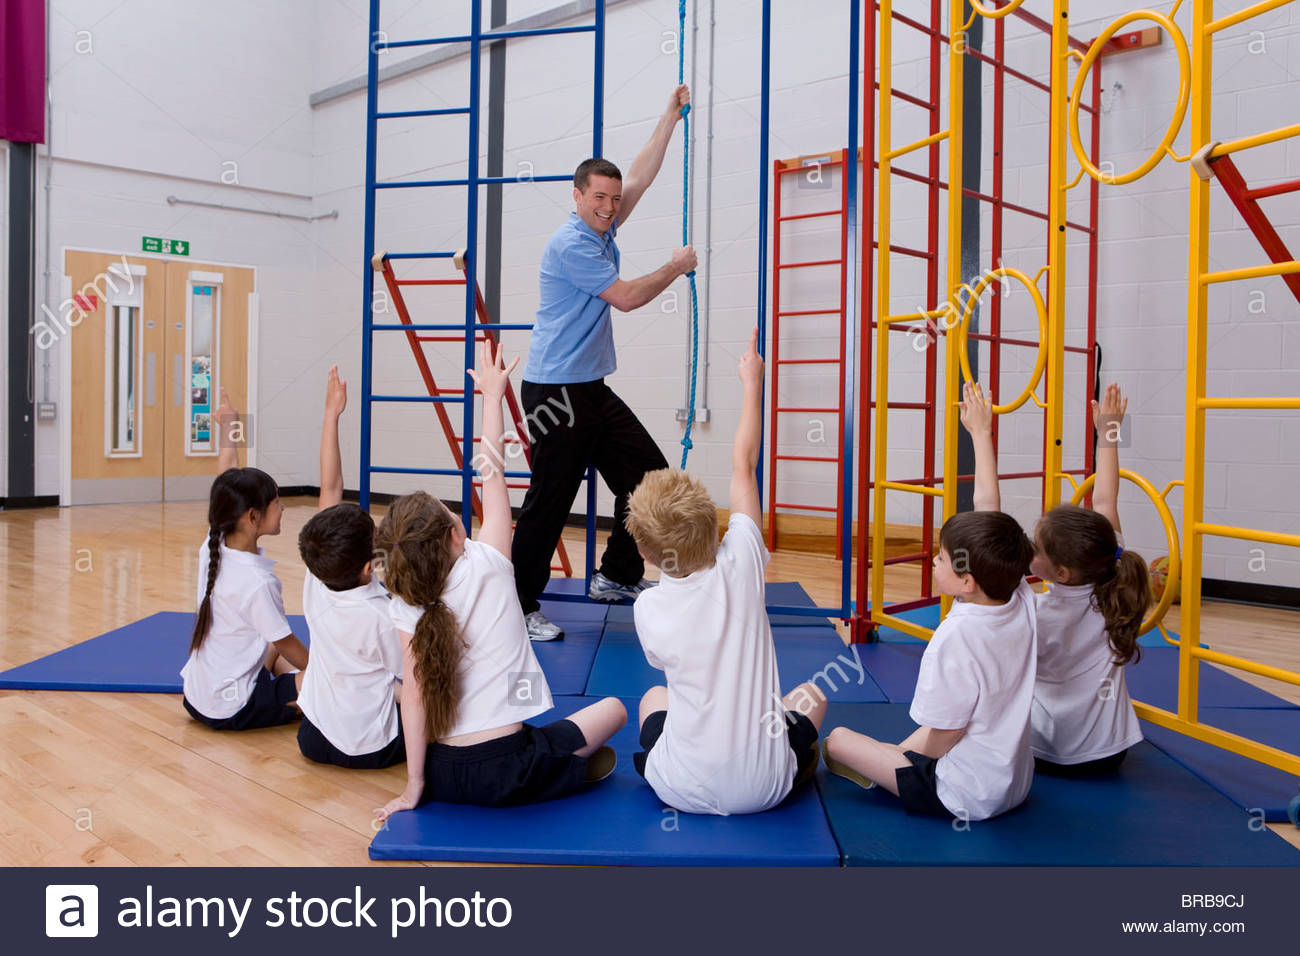 Gym teacher in school gymnasium with students